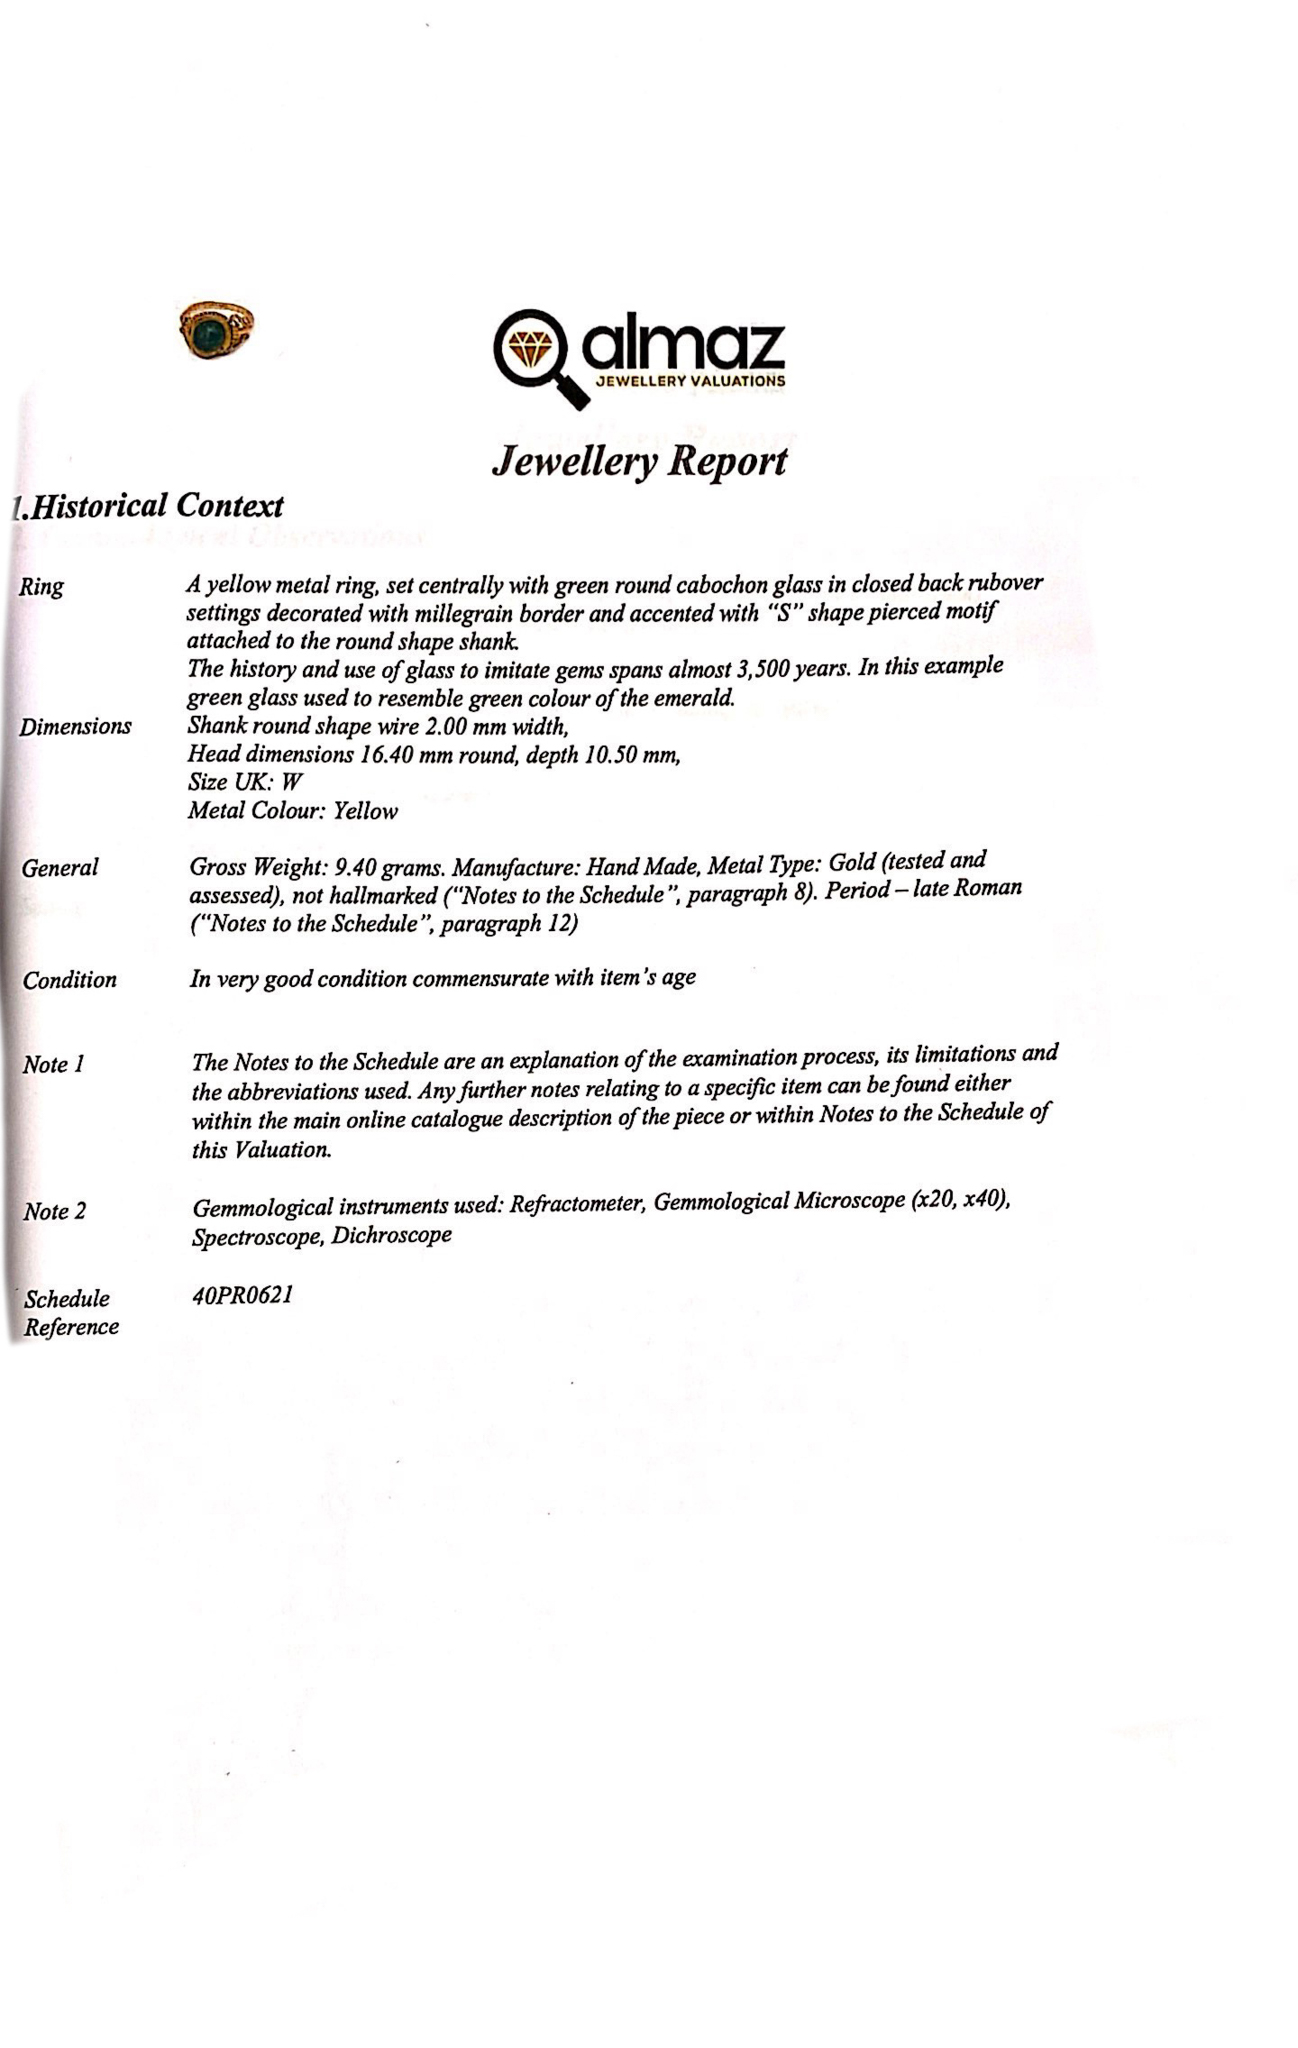 LATE ROMAN GOLD AND GLASS RING - EX CHRISTIE'S - FULL ANALYSIS - Image 7 of 8